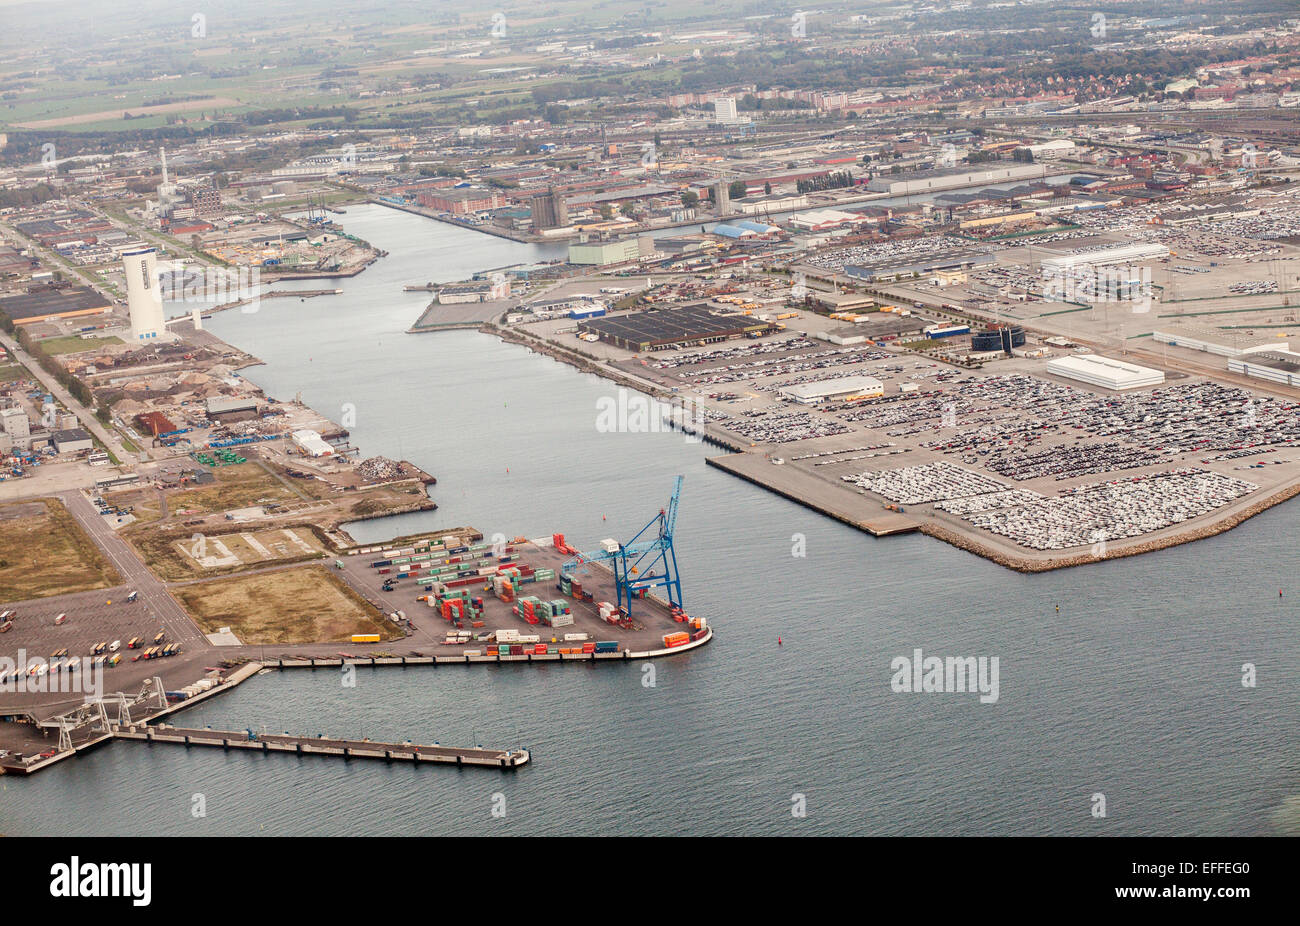 Aerial view of commercial dock and residential district - Stock Image